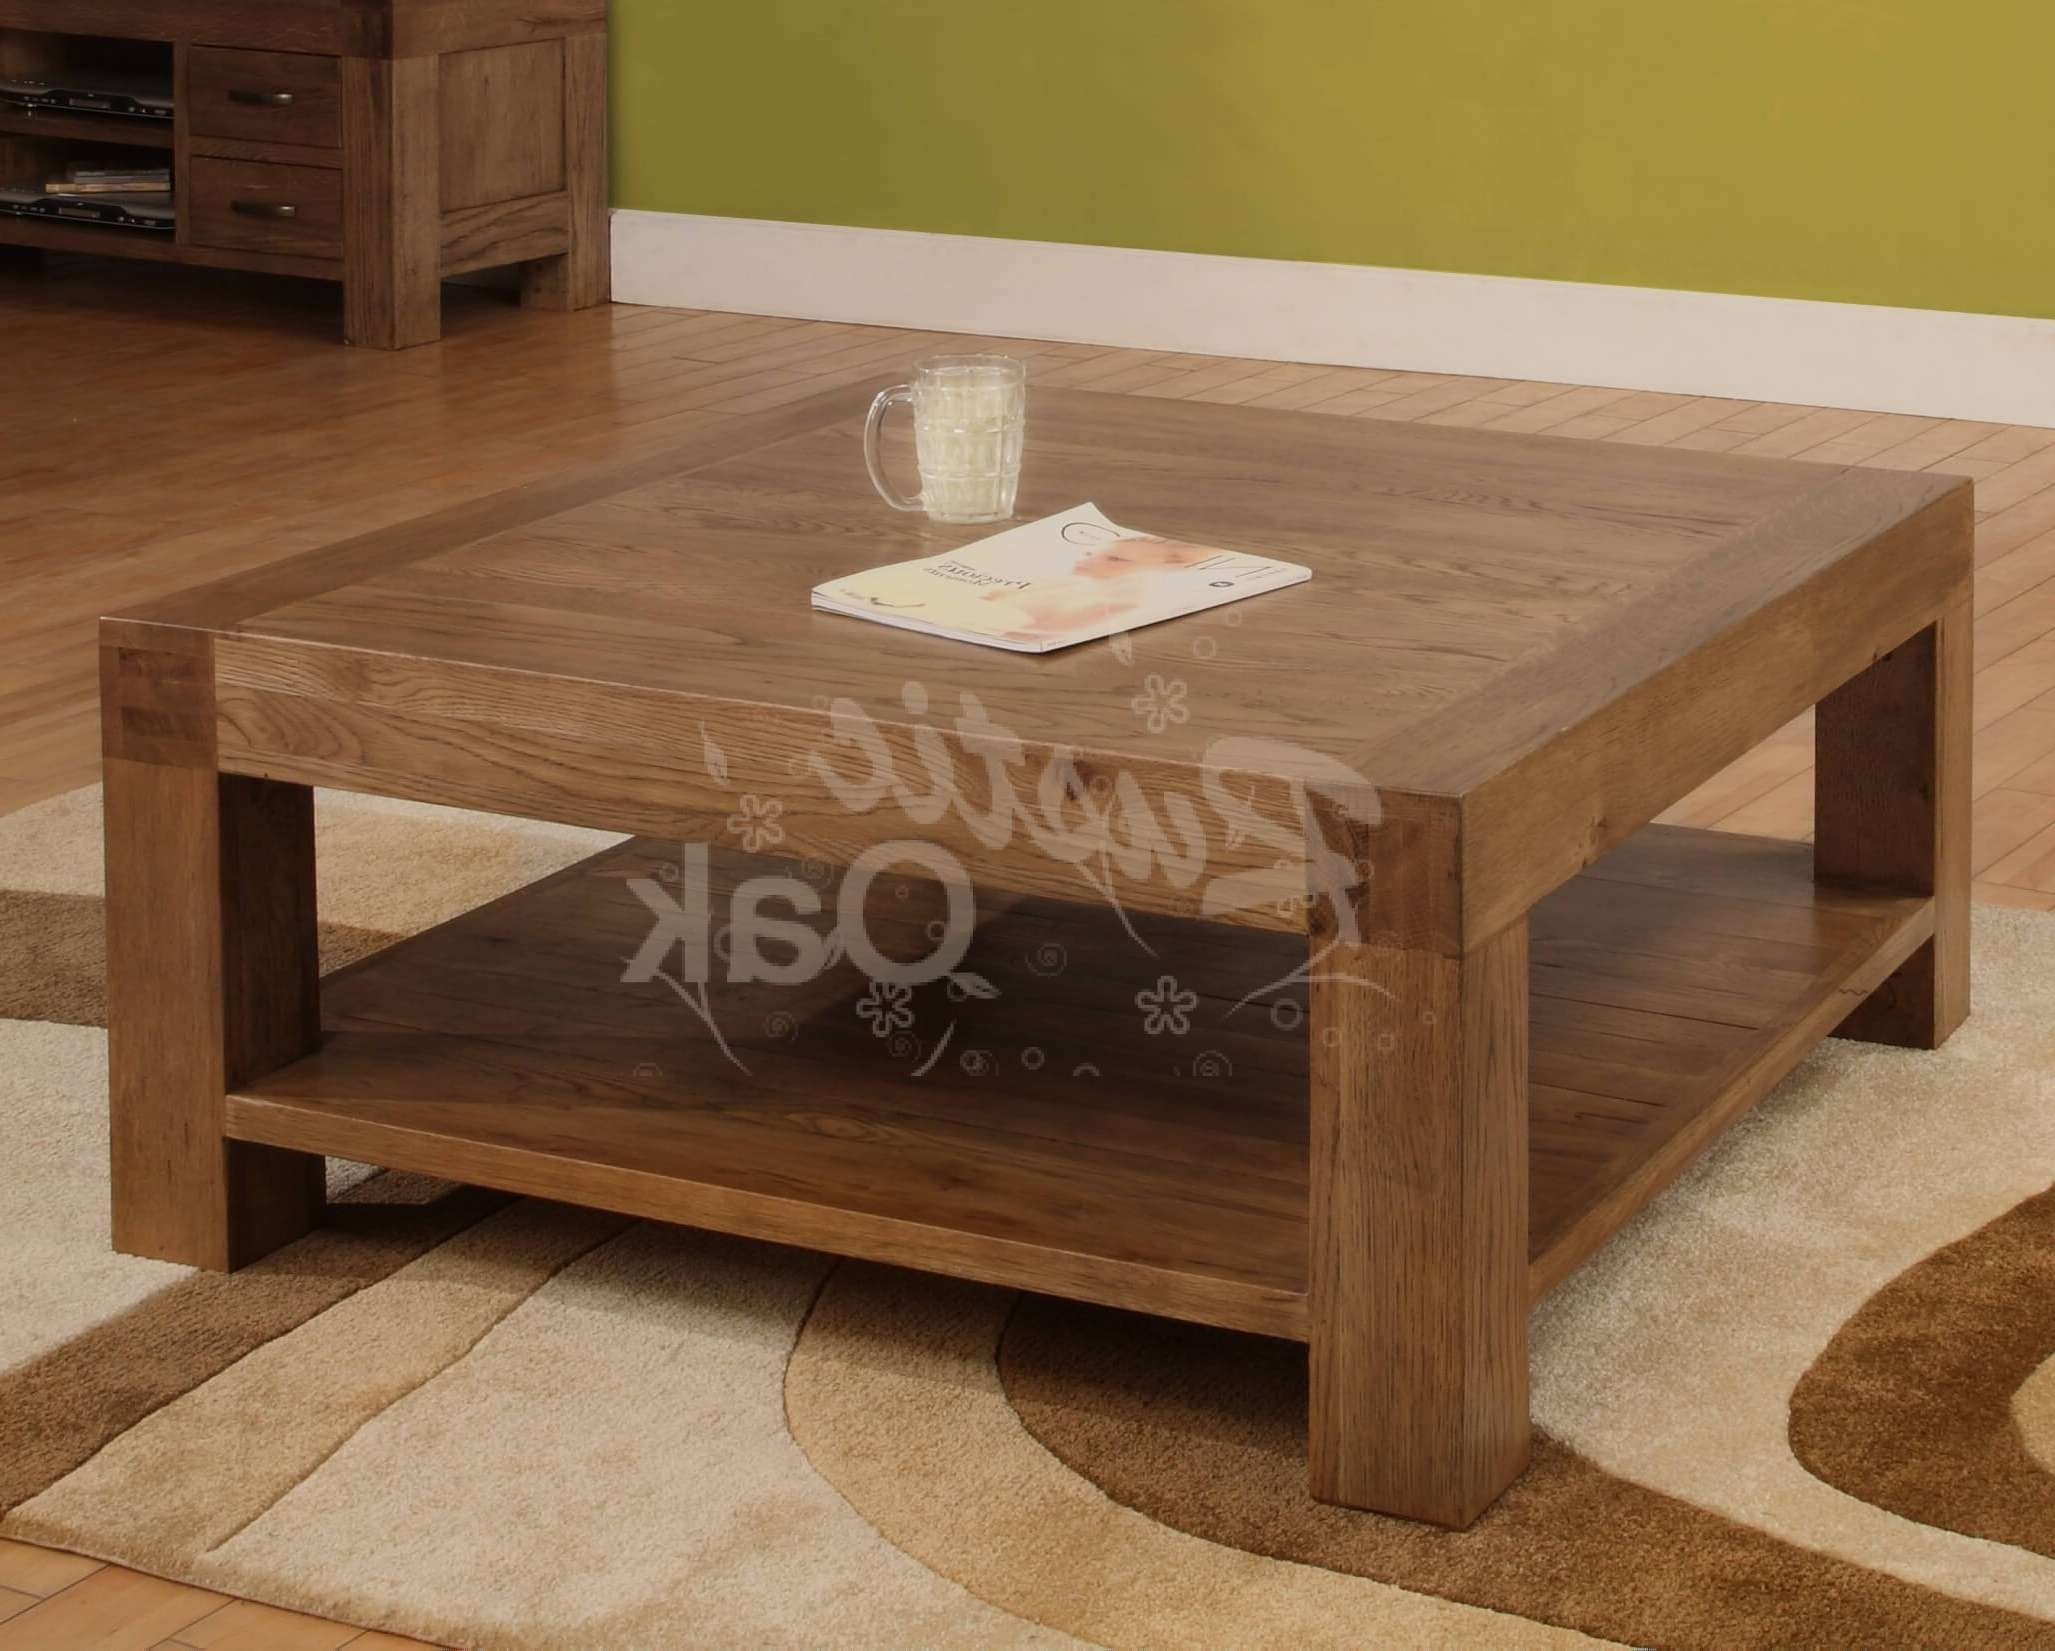 Widely Used Square Oak Coffee Tables Regarding Big Square Coffee Table Wood Tags : Solid Wood Block Coffee Table (View 8 of 20)